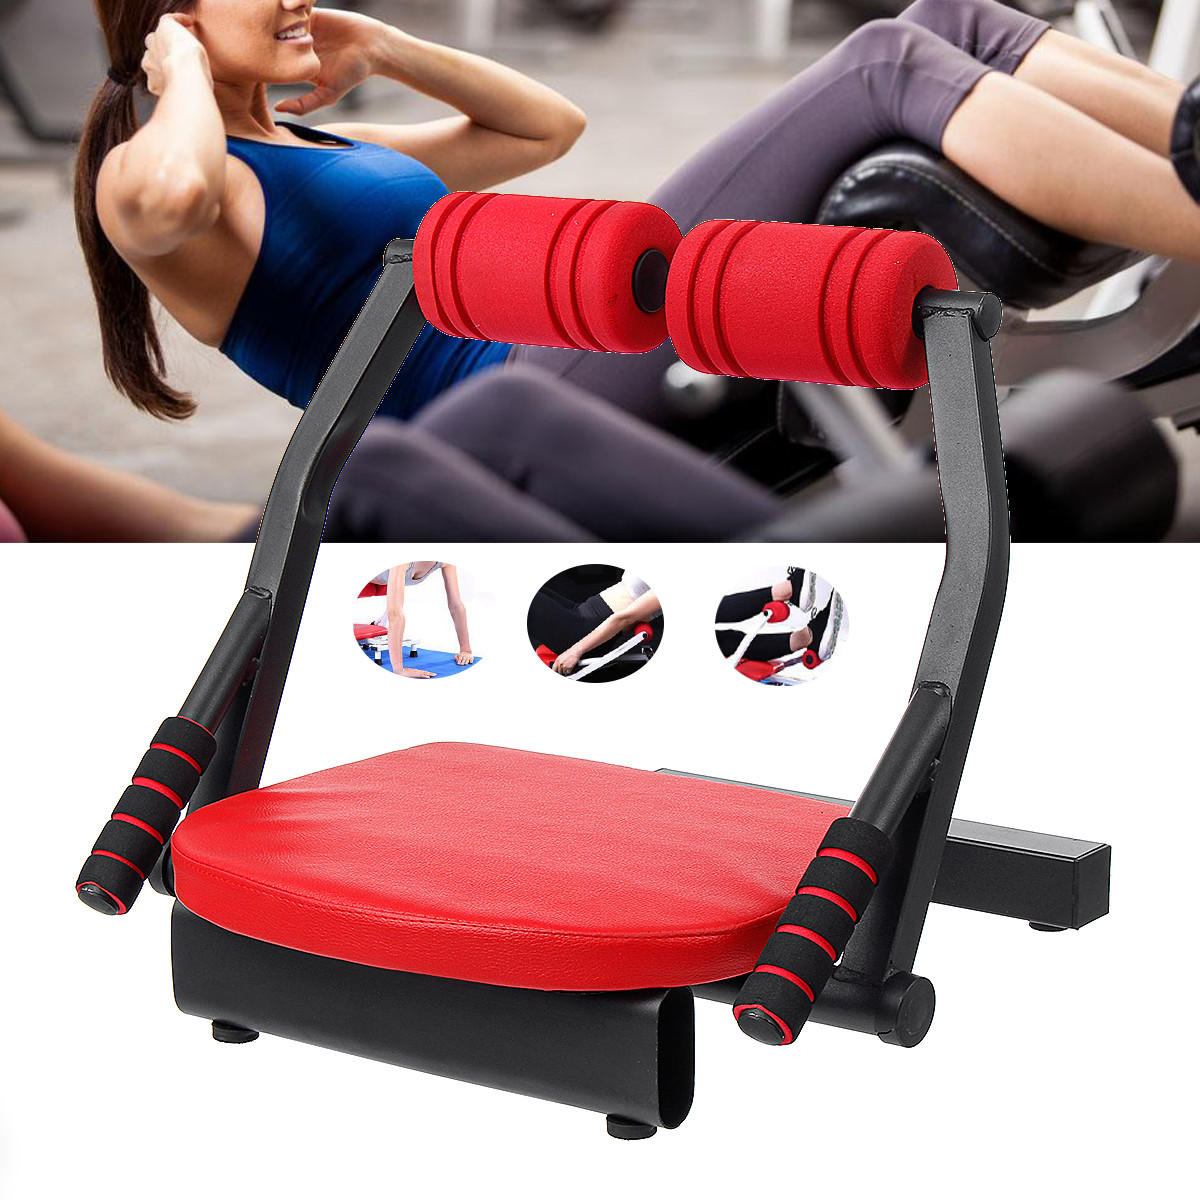 6 In 1 Sit-ups Cruncher Abdominal Trainer Machine Body Fitness Waist Power Exercise Tools